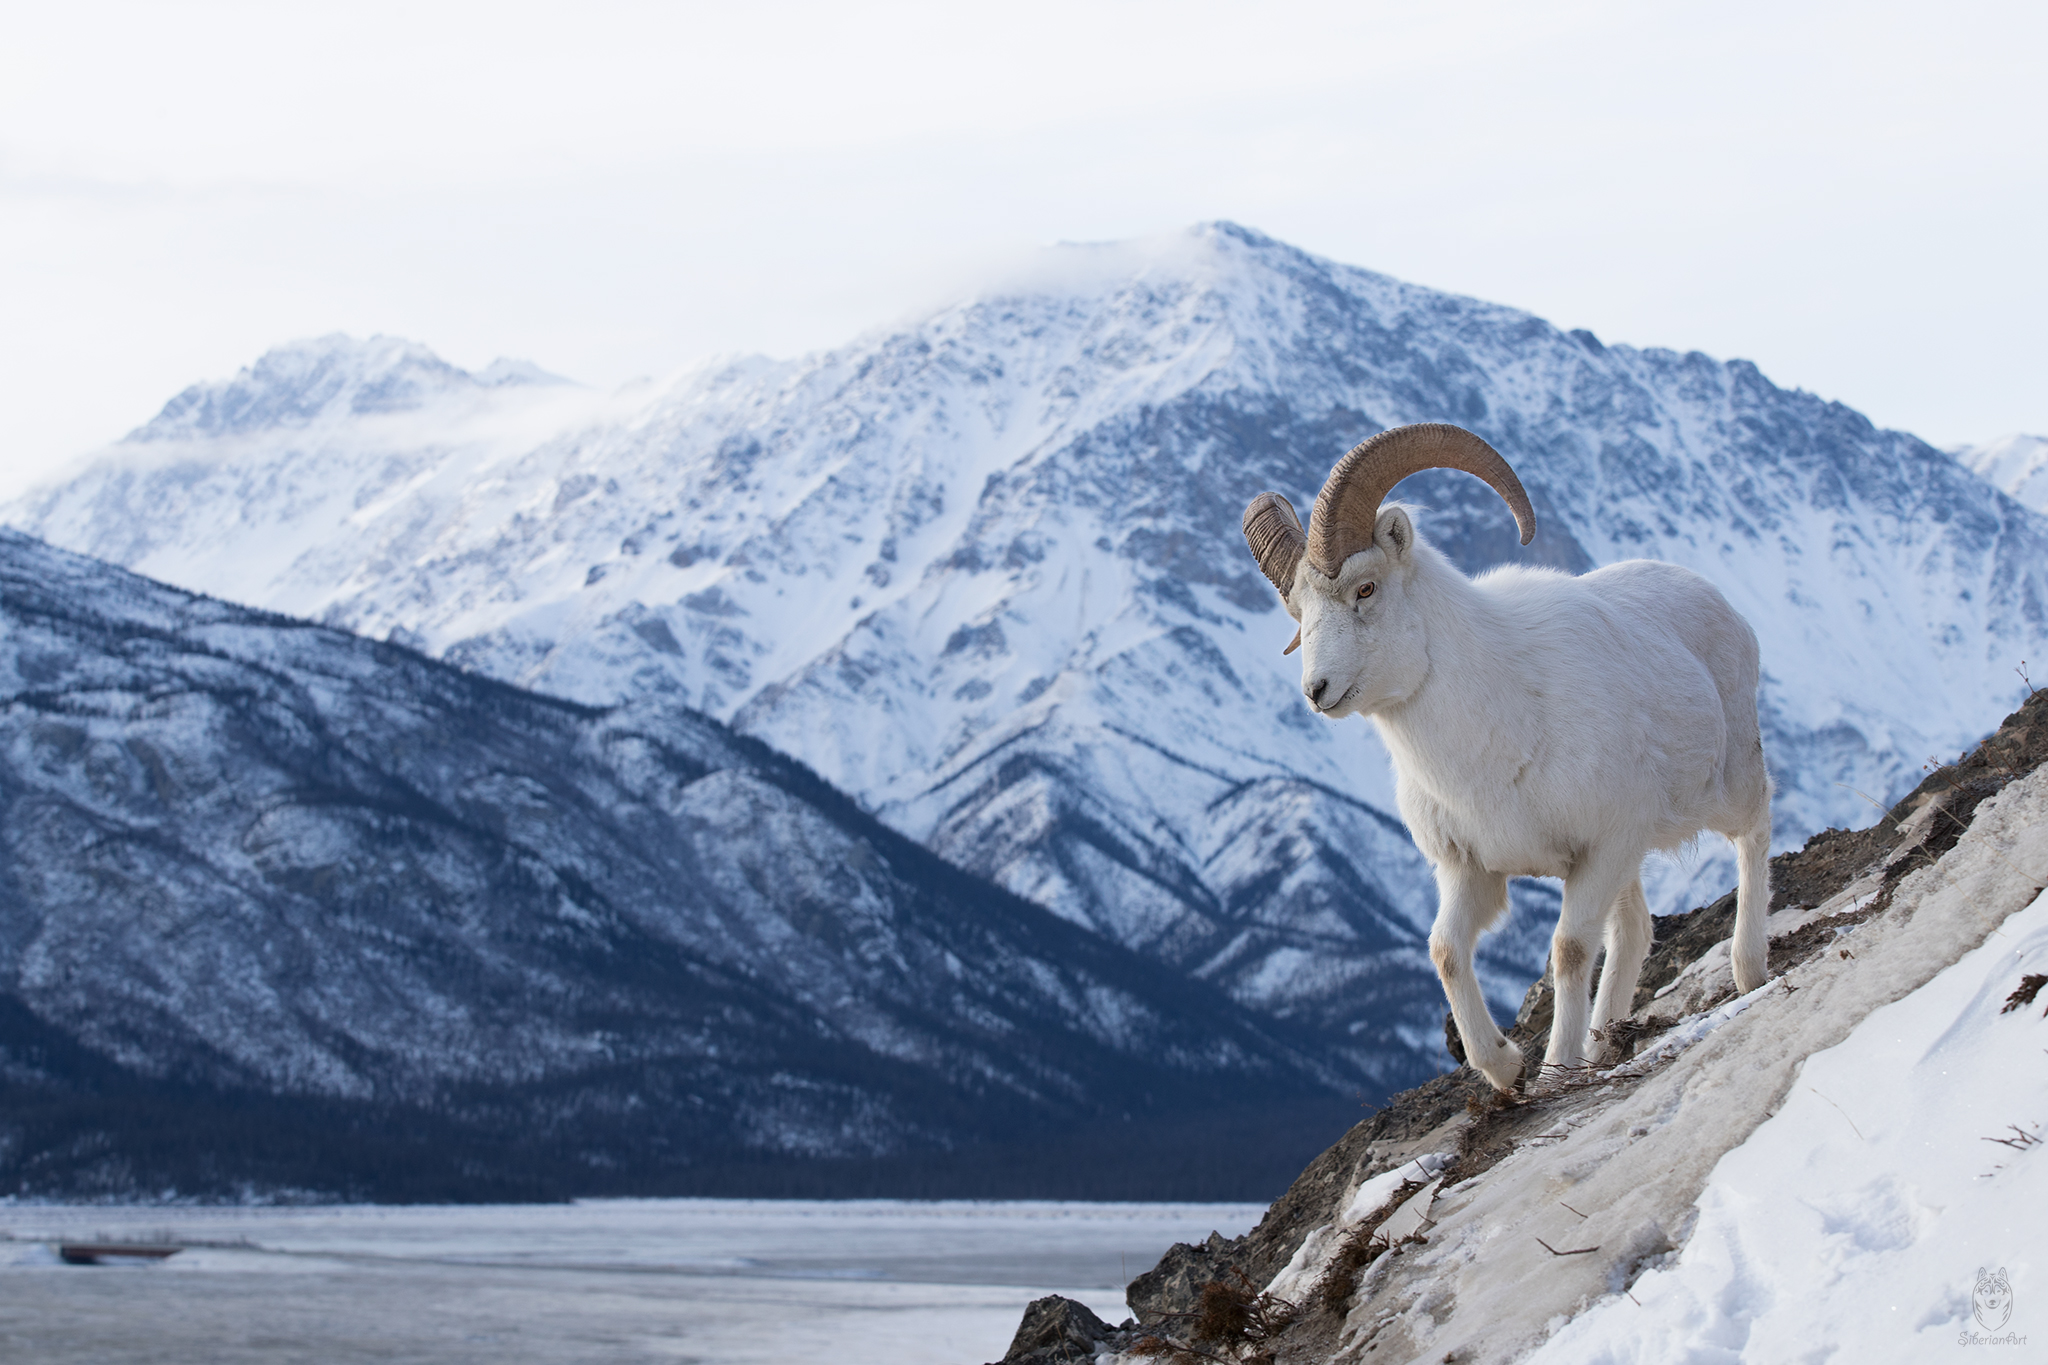 Dall Sheep Image I captured in the Yukon, Canada.